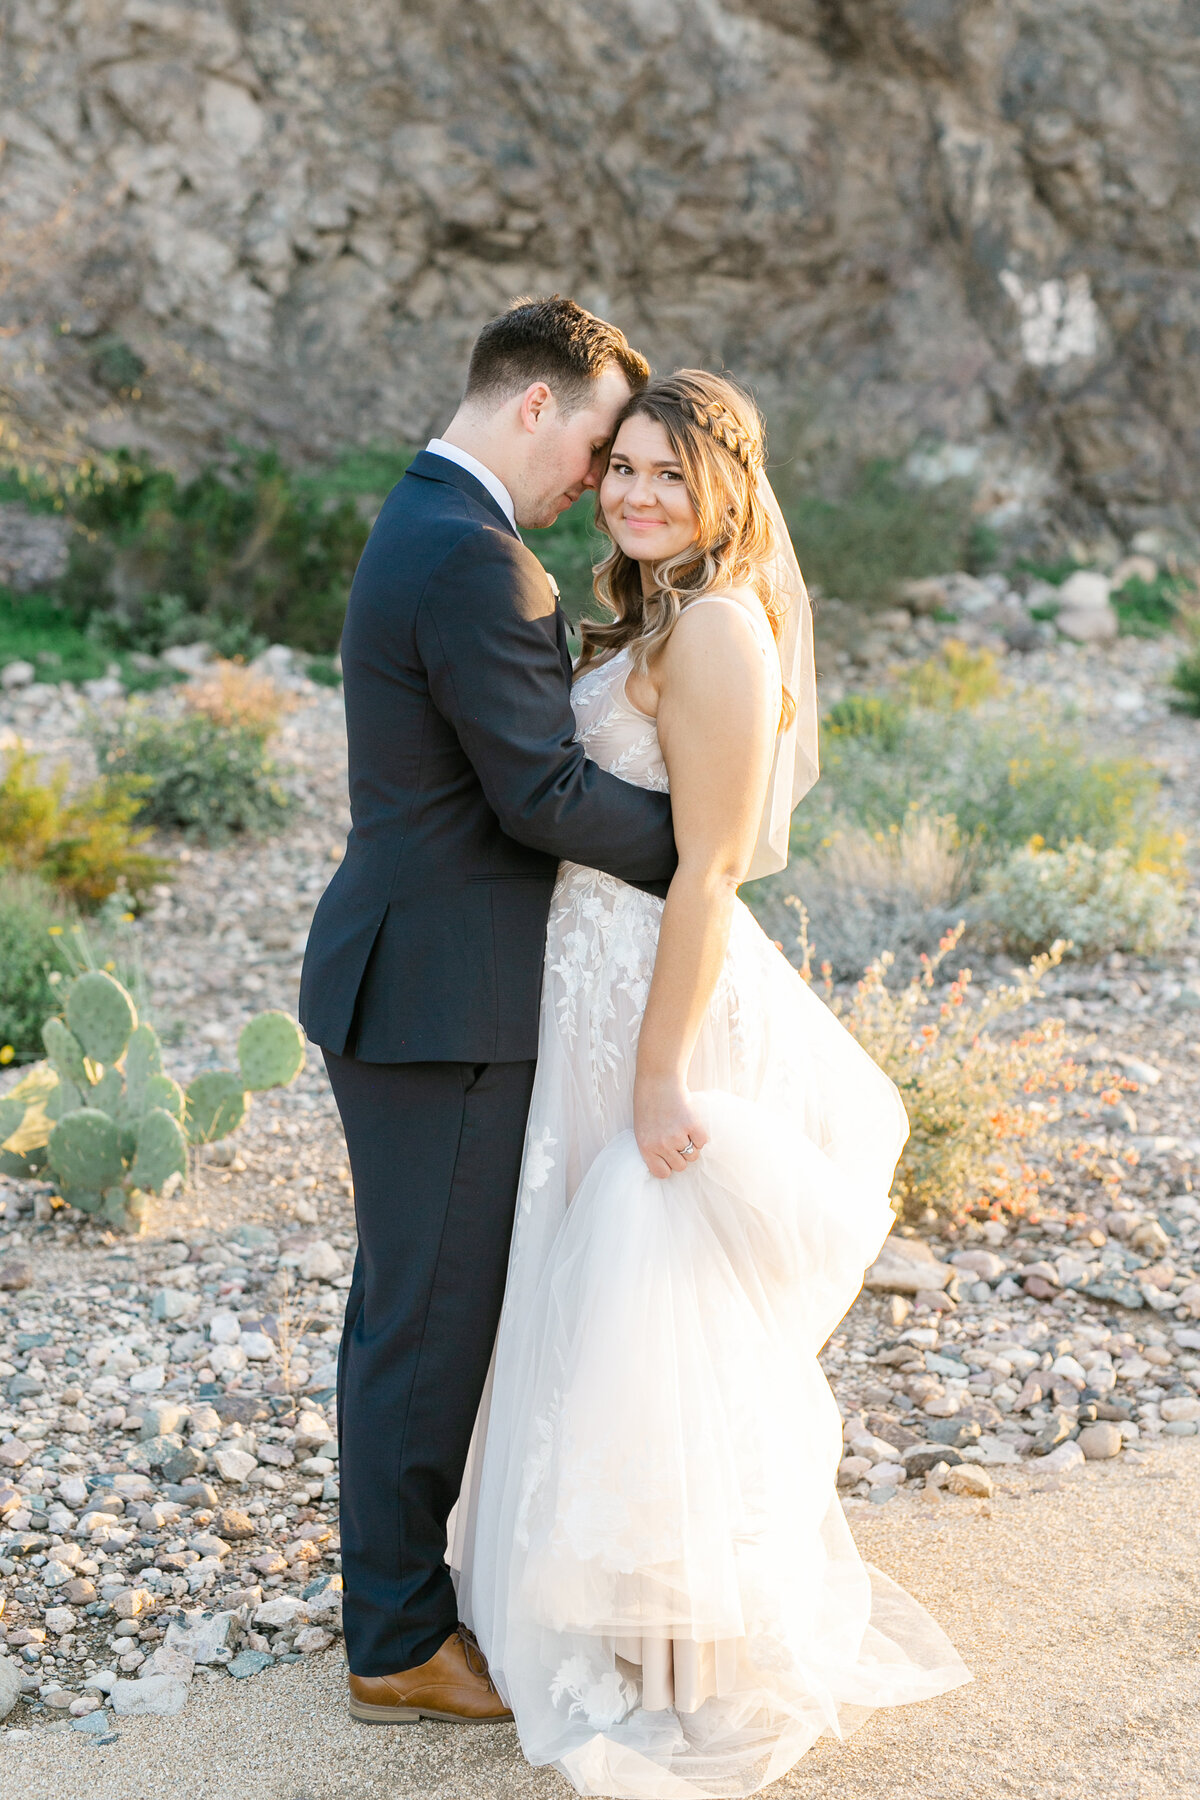 Karlie Colleen Photography - Arizona Backyard wedding - Brittney & Josh-205